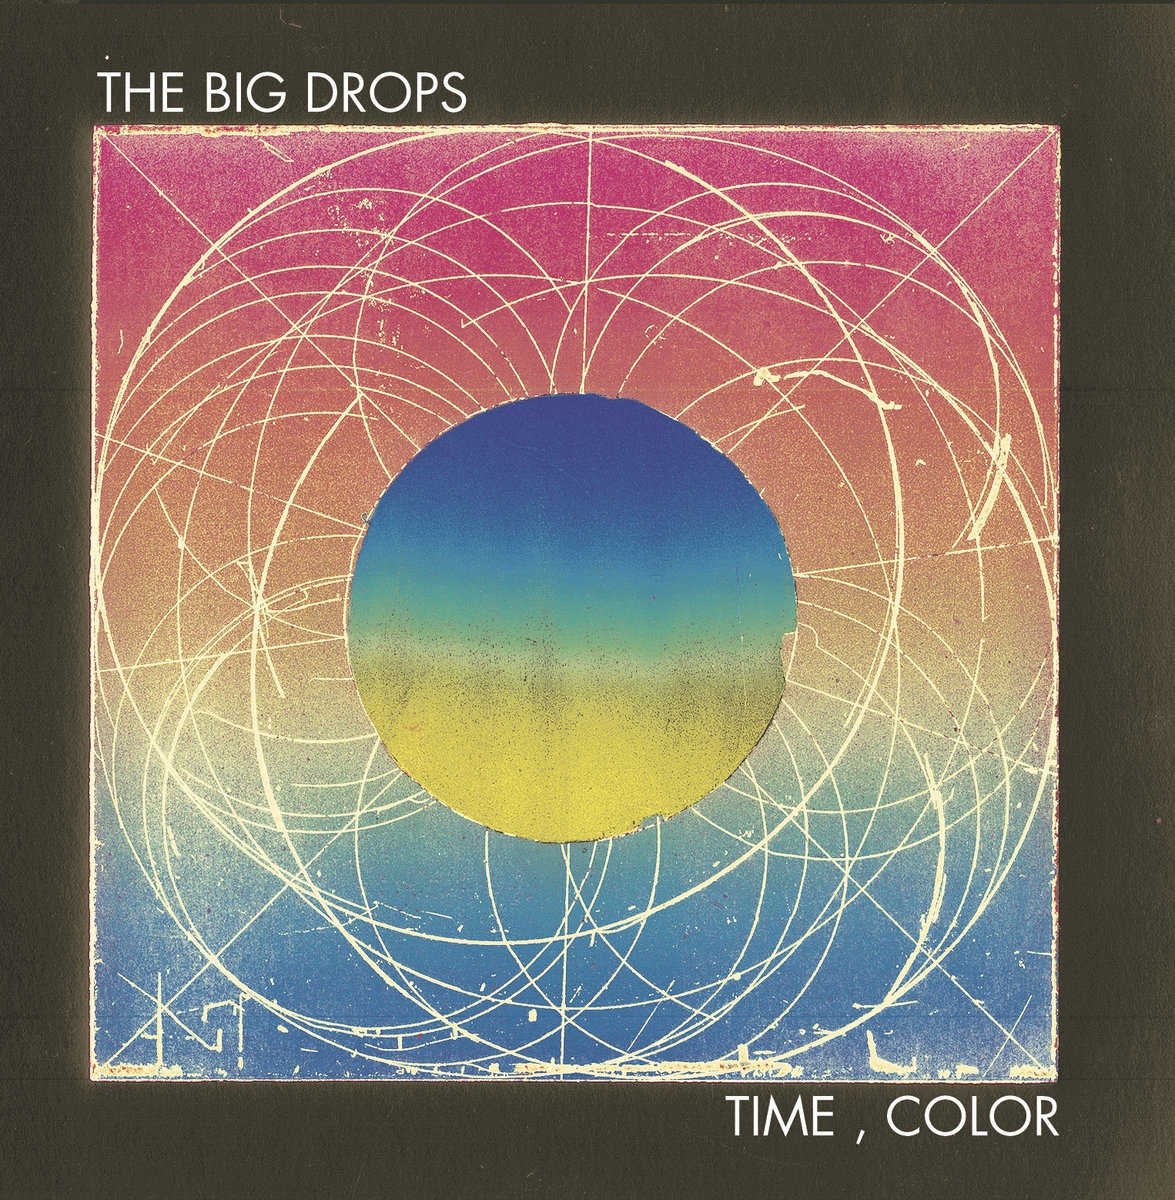 Time, Color - The Big Drops